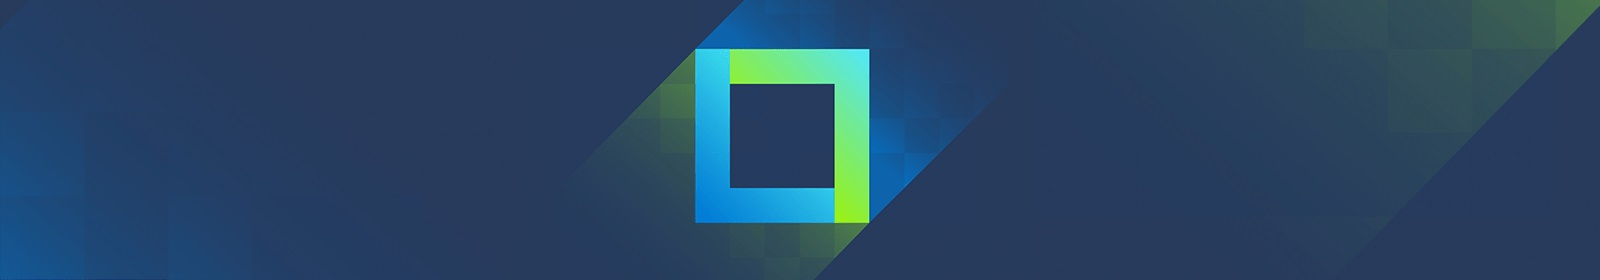 A blue and green square